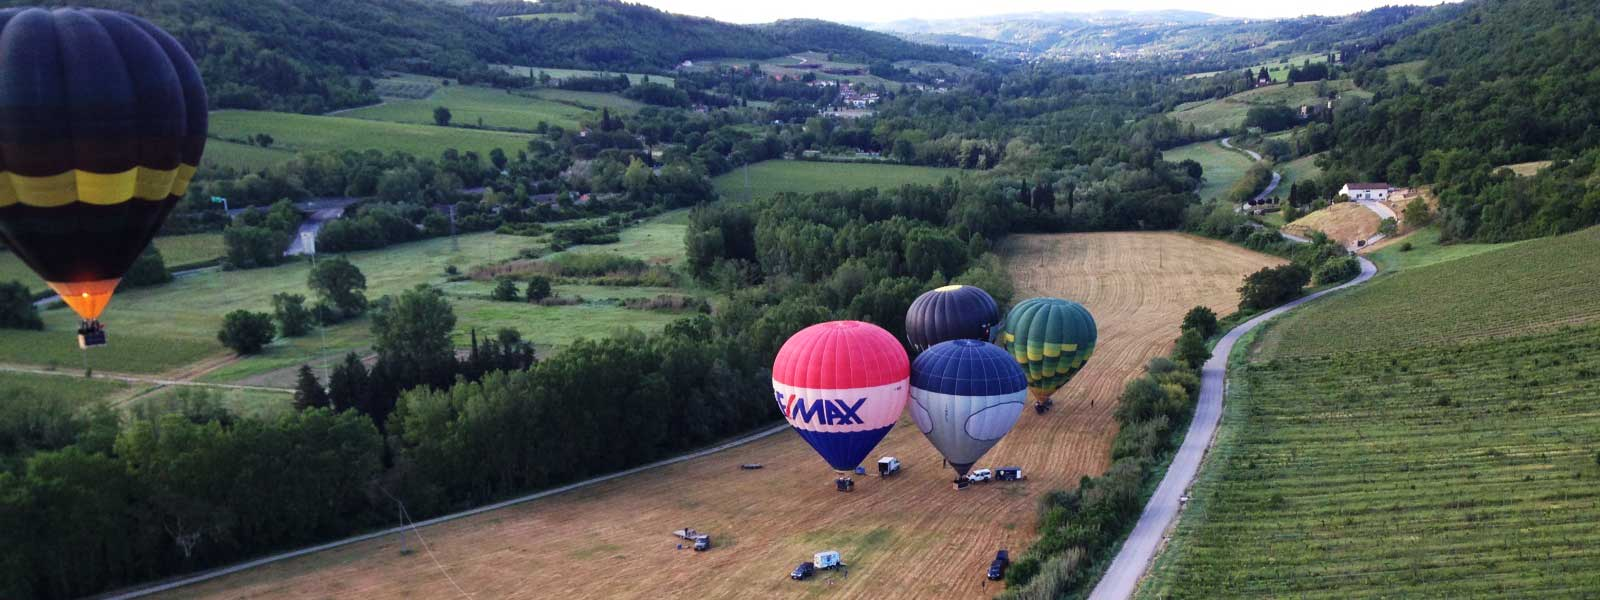 balloon-group-takeoff-italy